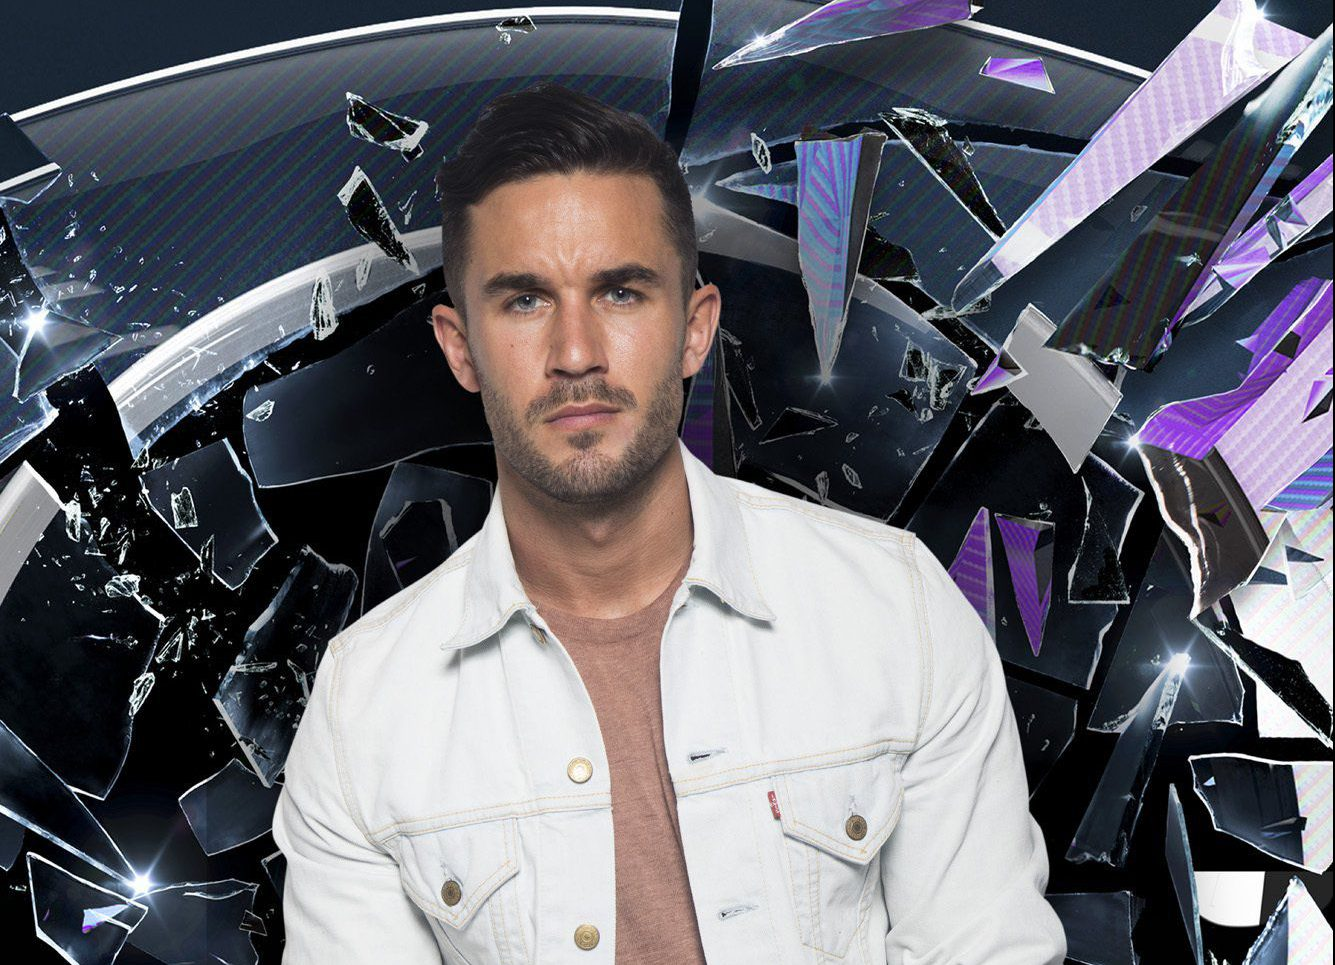 Channel 5 undated handout photo of Alex Cannon, one of the housemates in this year's Summer Big Brother 2016. PRESS ASSOCIATION Photo. Issue date: Tuesday June 7, 2016. Photo credit should read: Channel 5/PA Wire NOTE TO EDITORS: This handout photo may only be used in for editorial reporting purposes for the contemporaneous illustration of events, things or the people in the image or facts mentioned in the caption. Reuse of the picture may require further permission from the copyright holder.